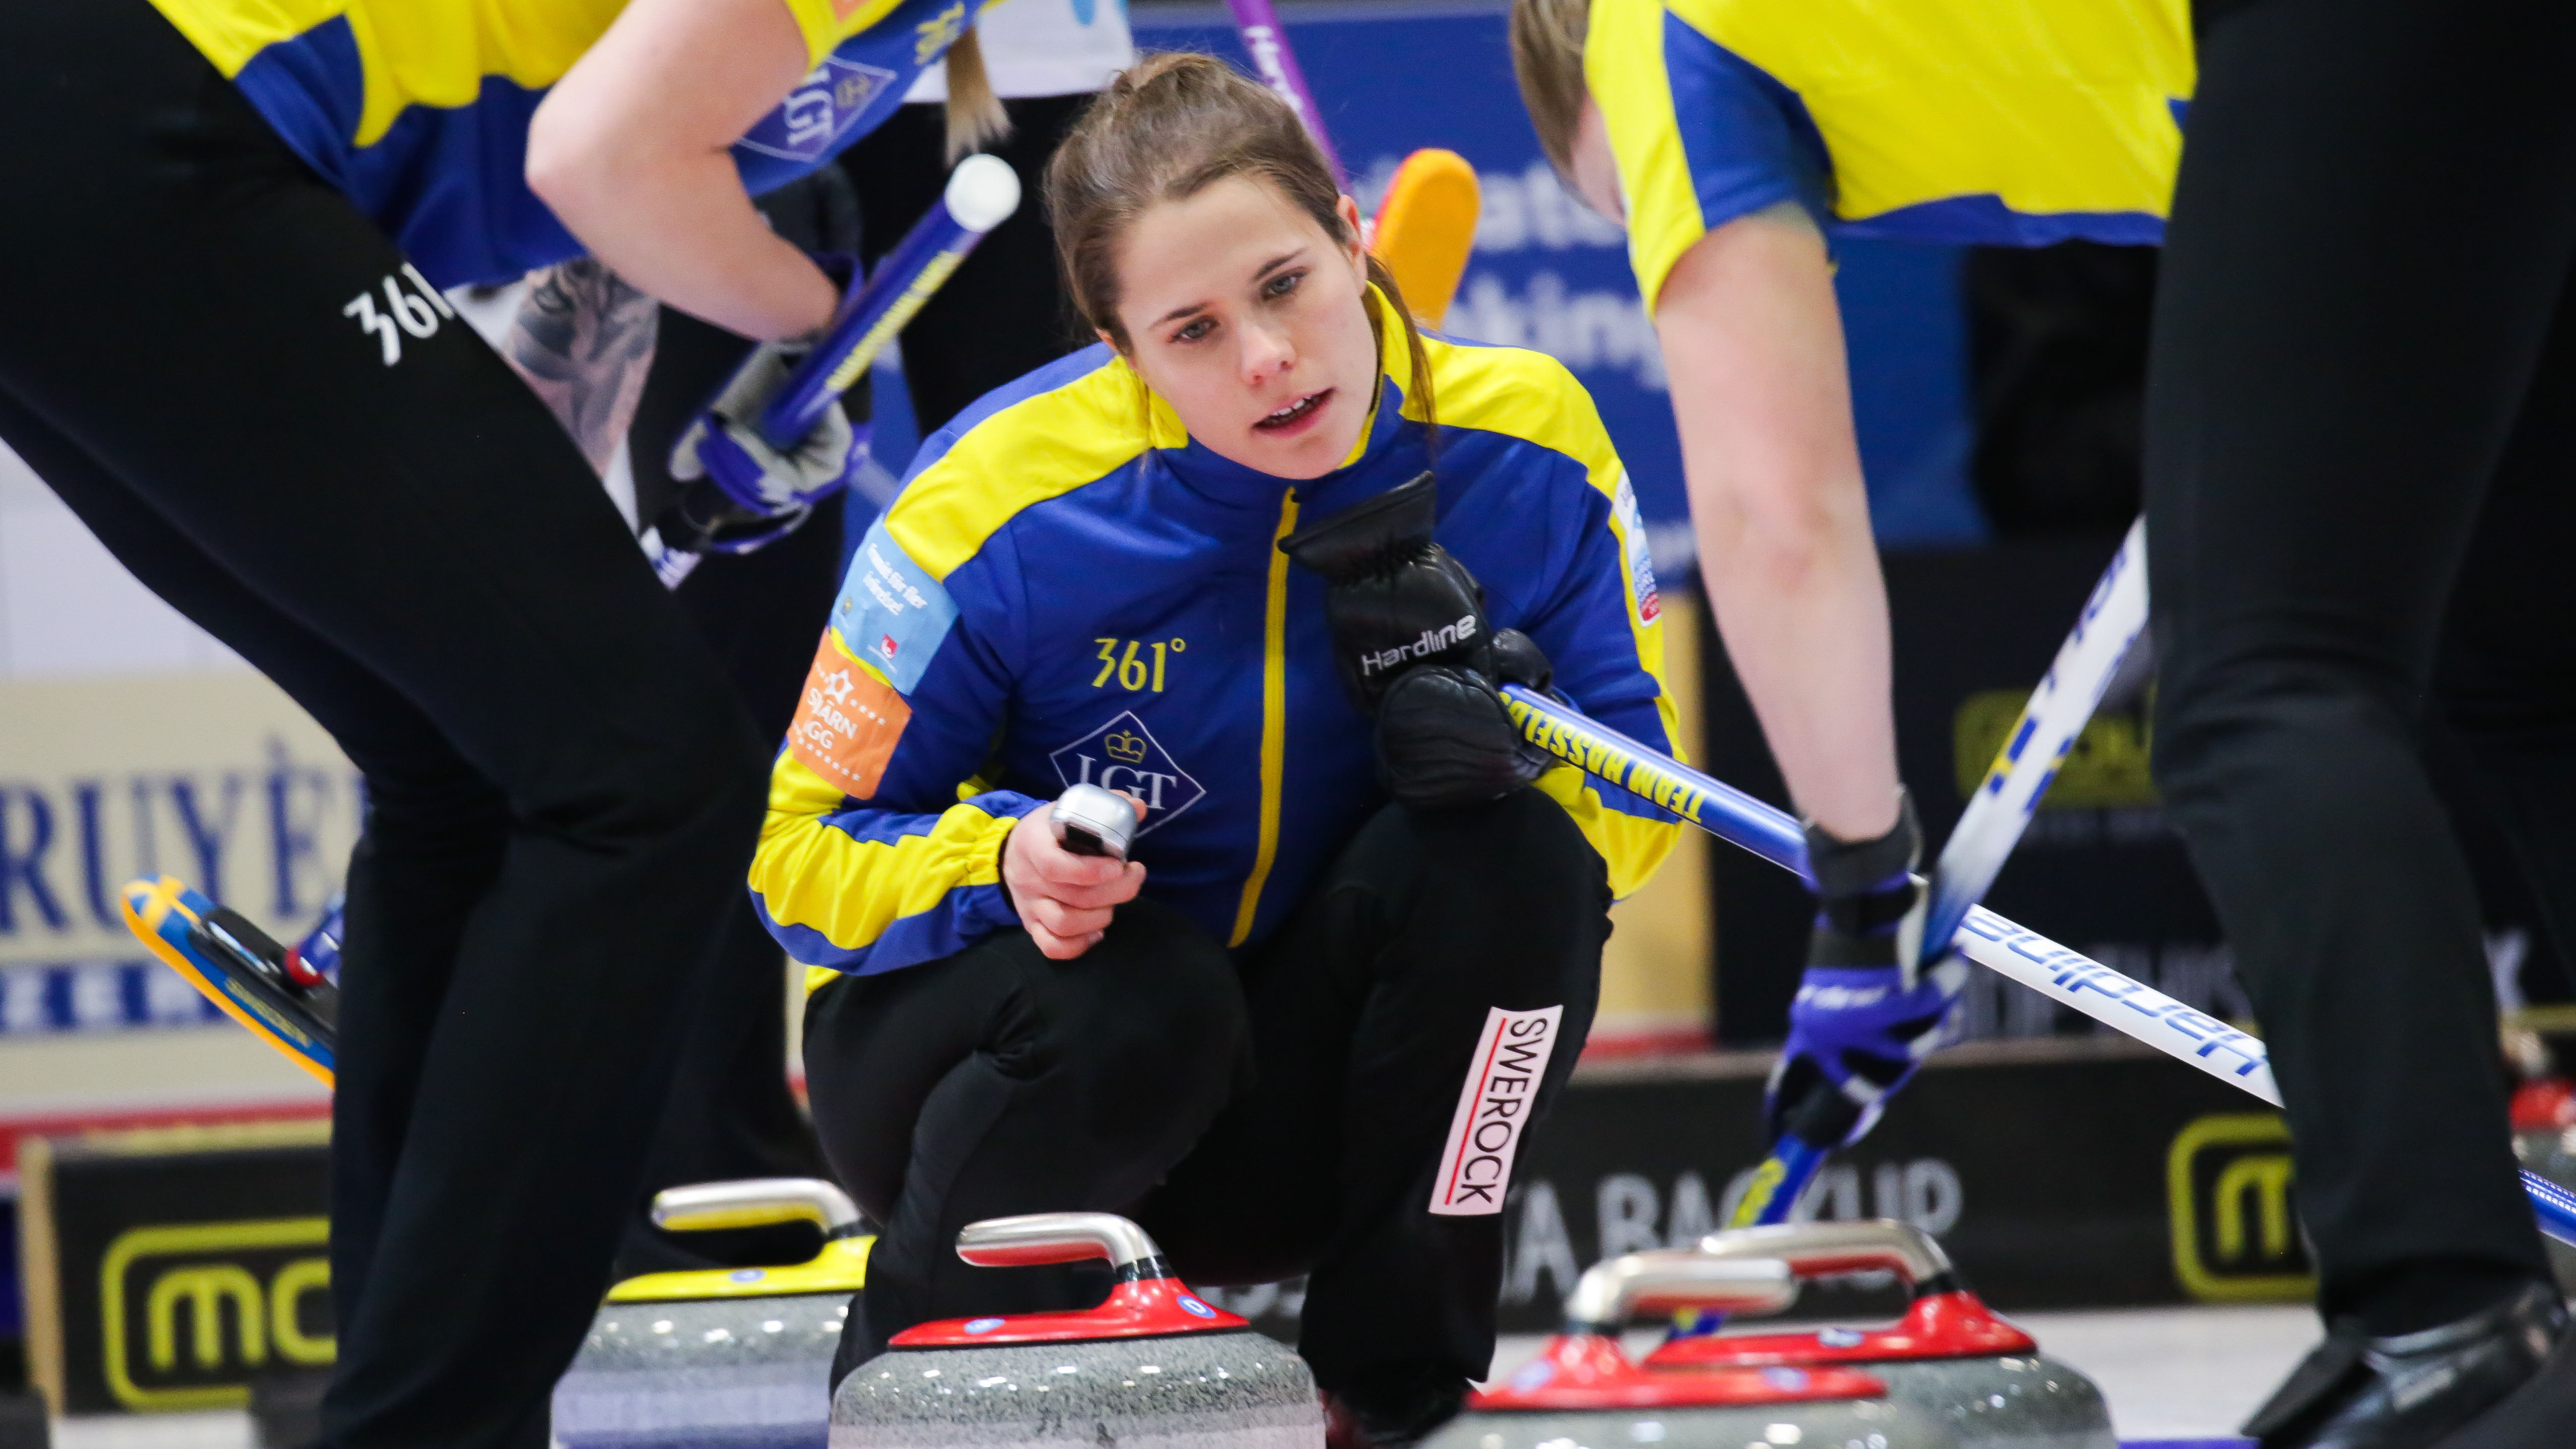 Tredje raka for hasselborg